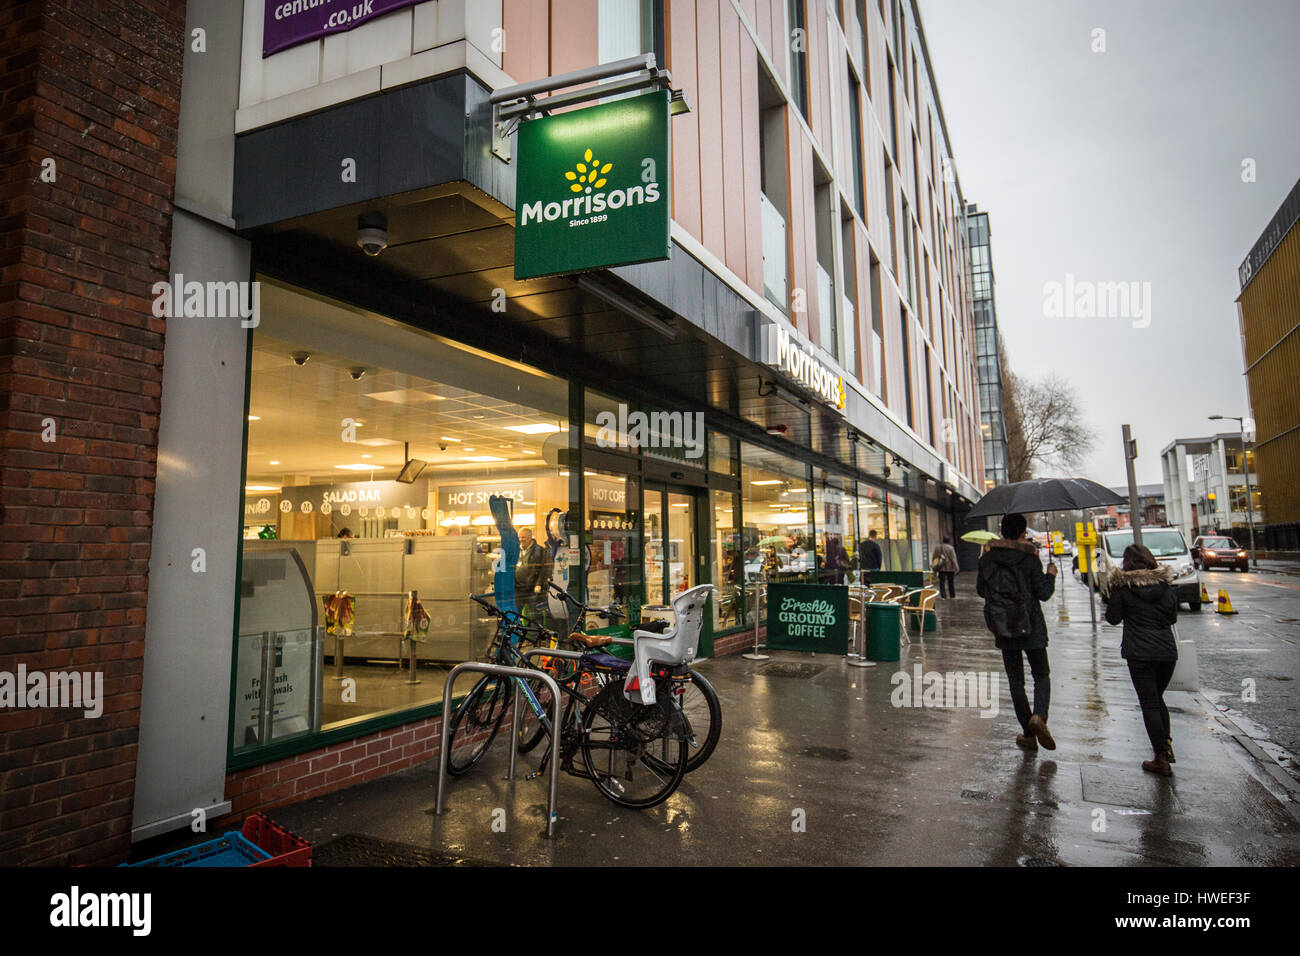 Morrisons supermarket. Exterior of small Morrisons store in Manchester  - Grafton St, Oxford Rd, Manchester M13 - Stock Image